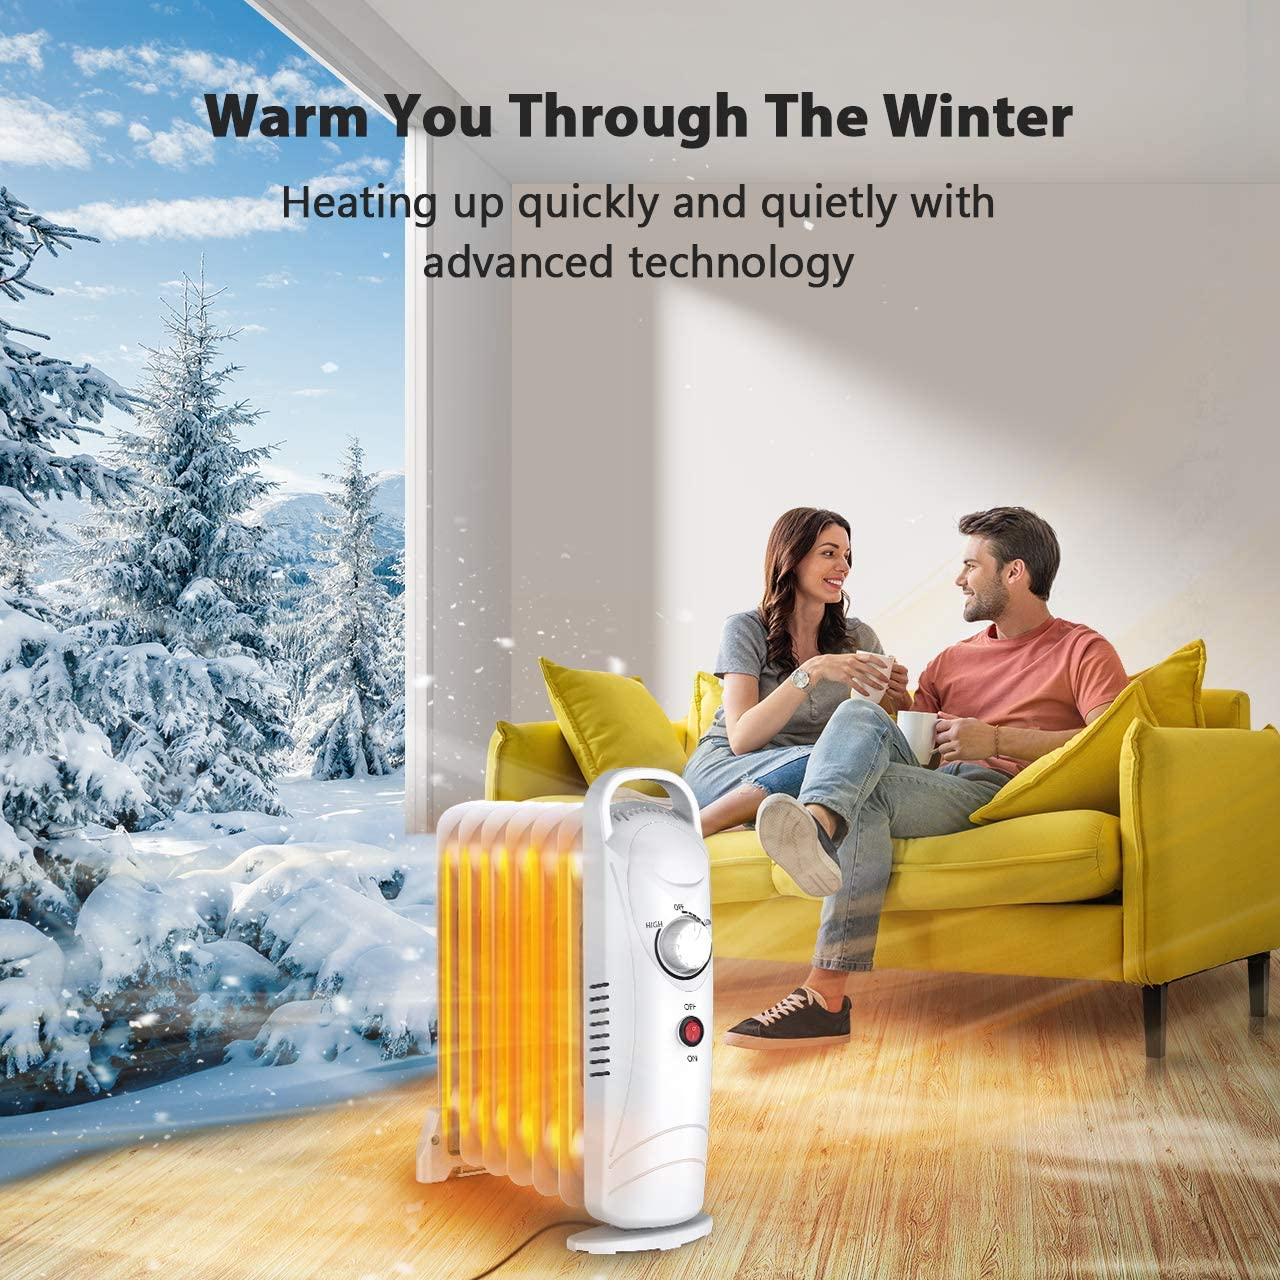 Electric Oil Heater Oil-filled Radiator Heater with Adjustable Thermostat Overheat Protection 700W Mini Oil Space Heater for Office Quiet Portable Oil Heater for Home Energy Saving